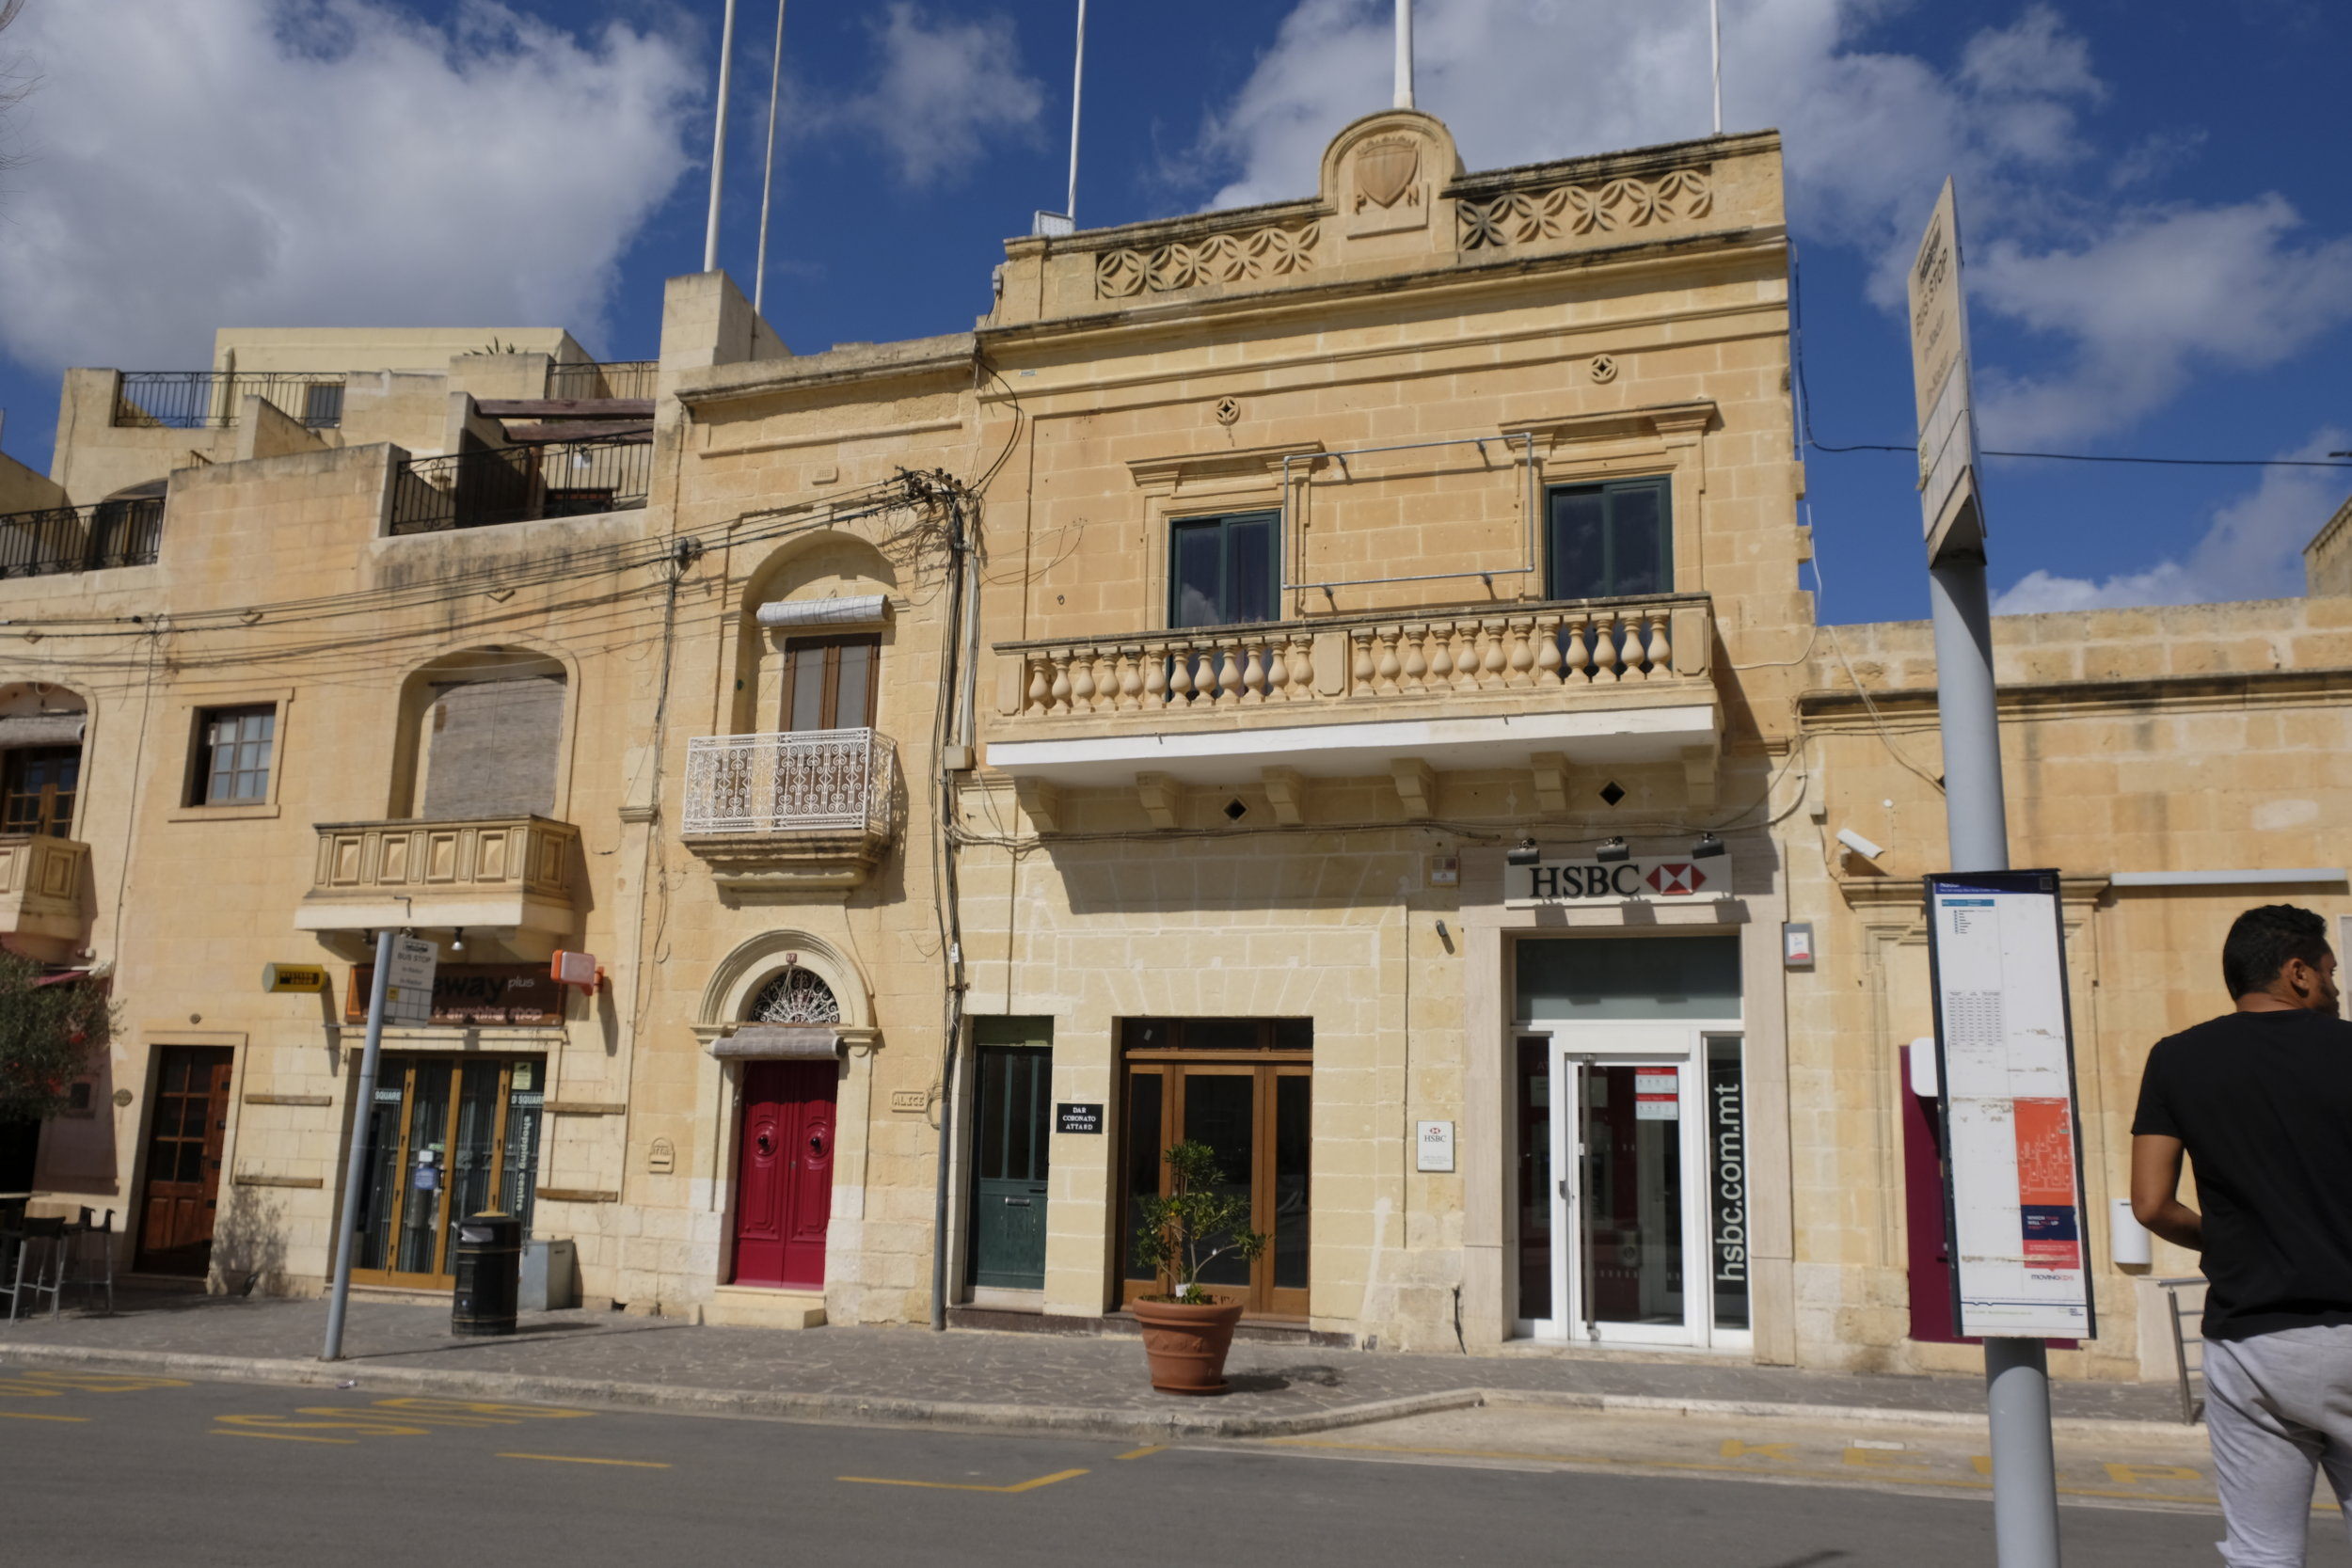 Traditional Gozo architecture, now also home to a bank